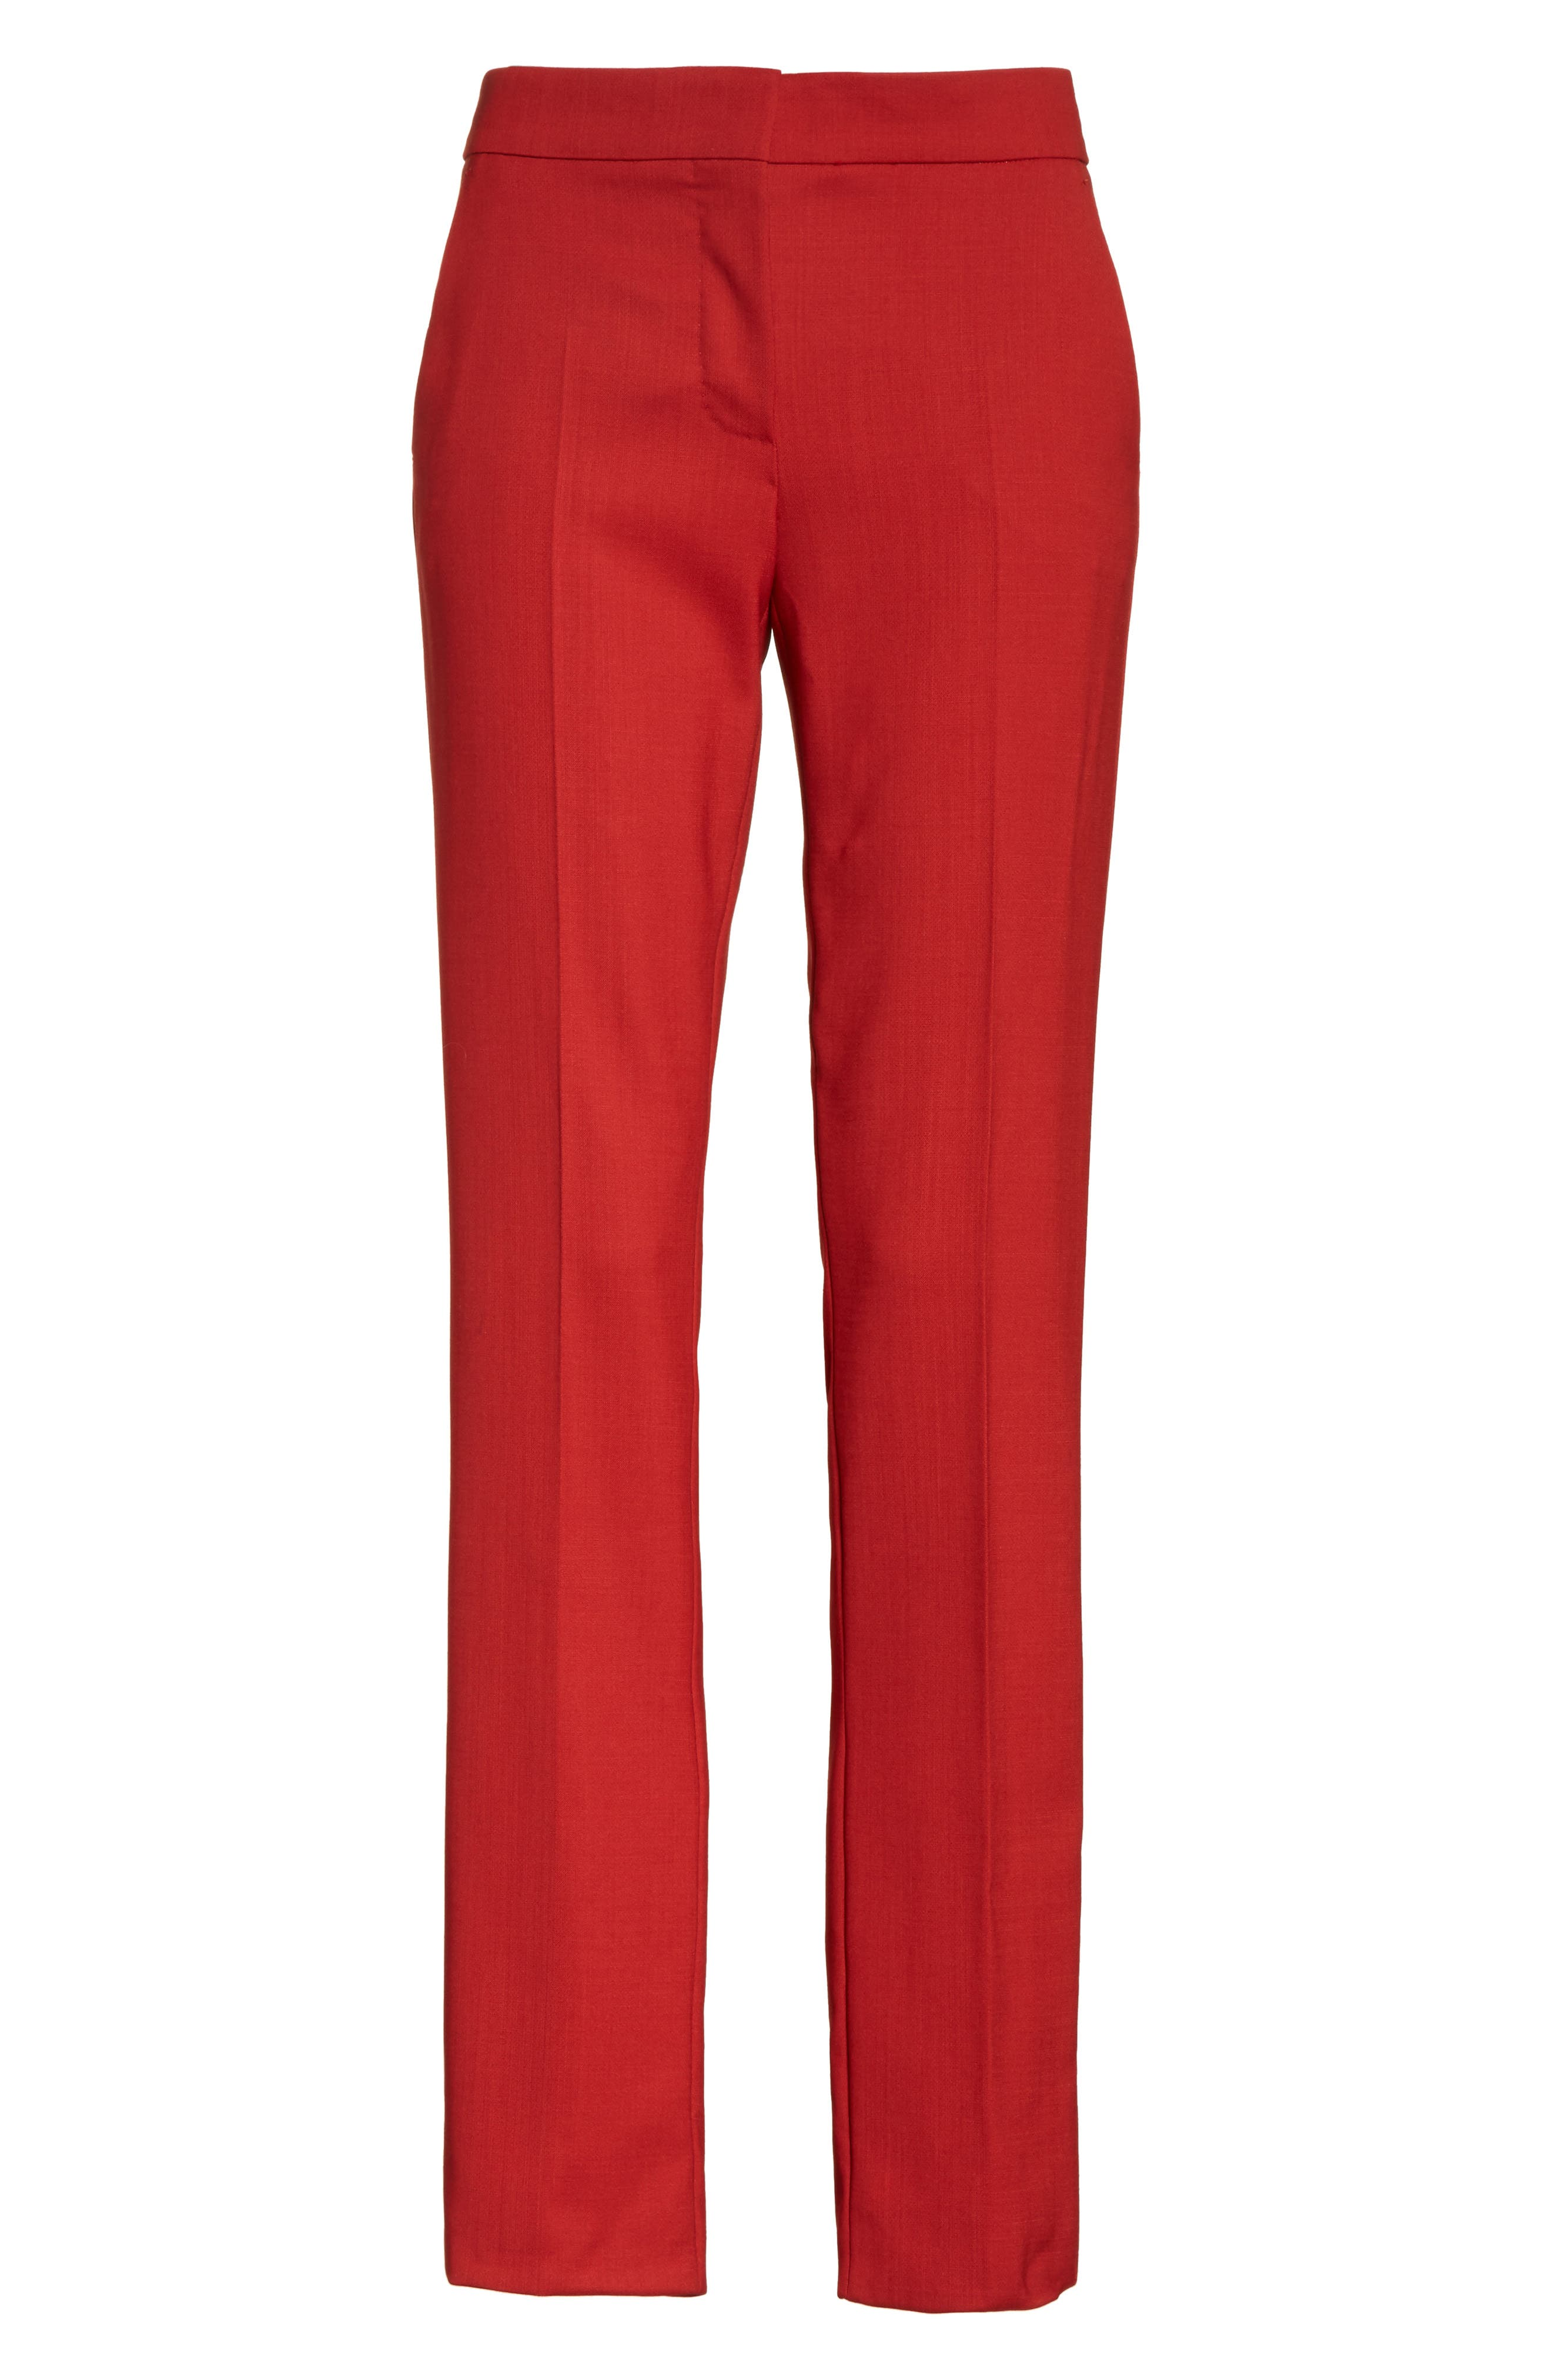 Oscuro Stretch Wool Pants,                             Alternate thumbnail 6, color,                             614